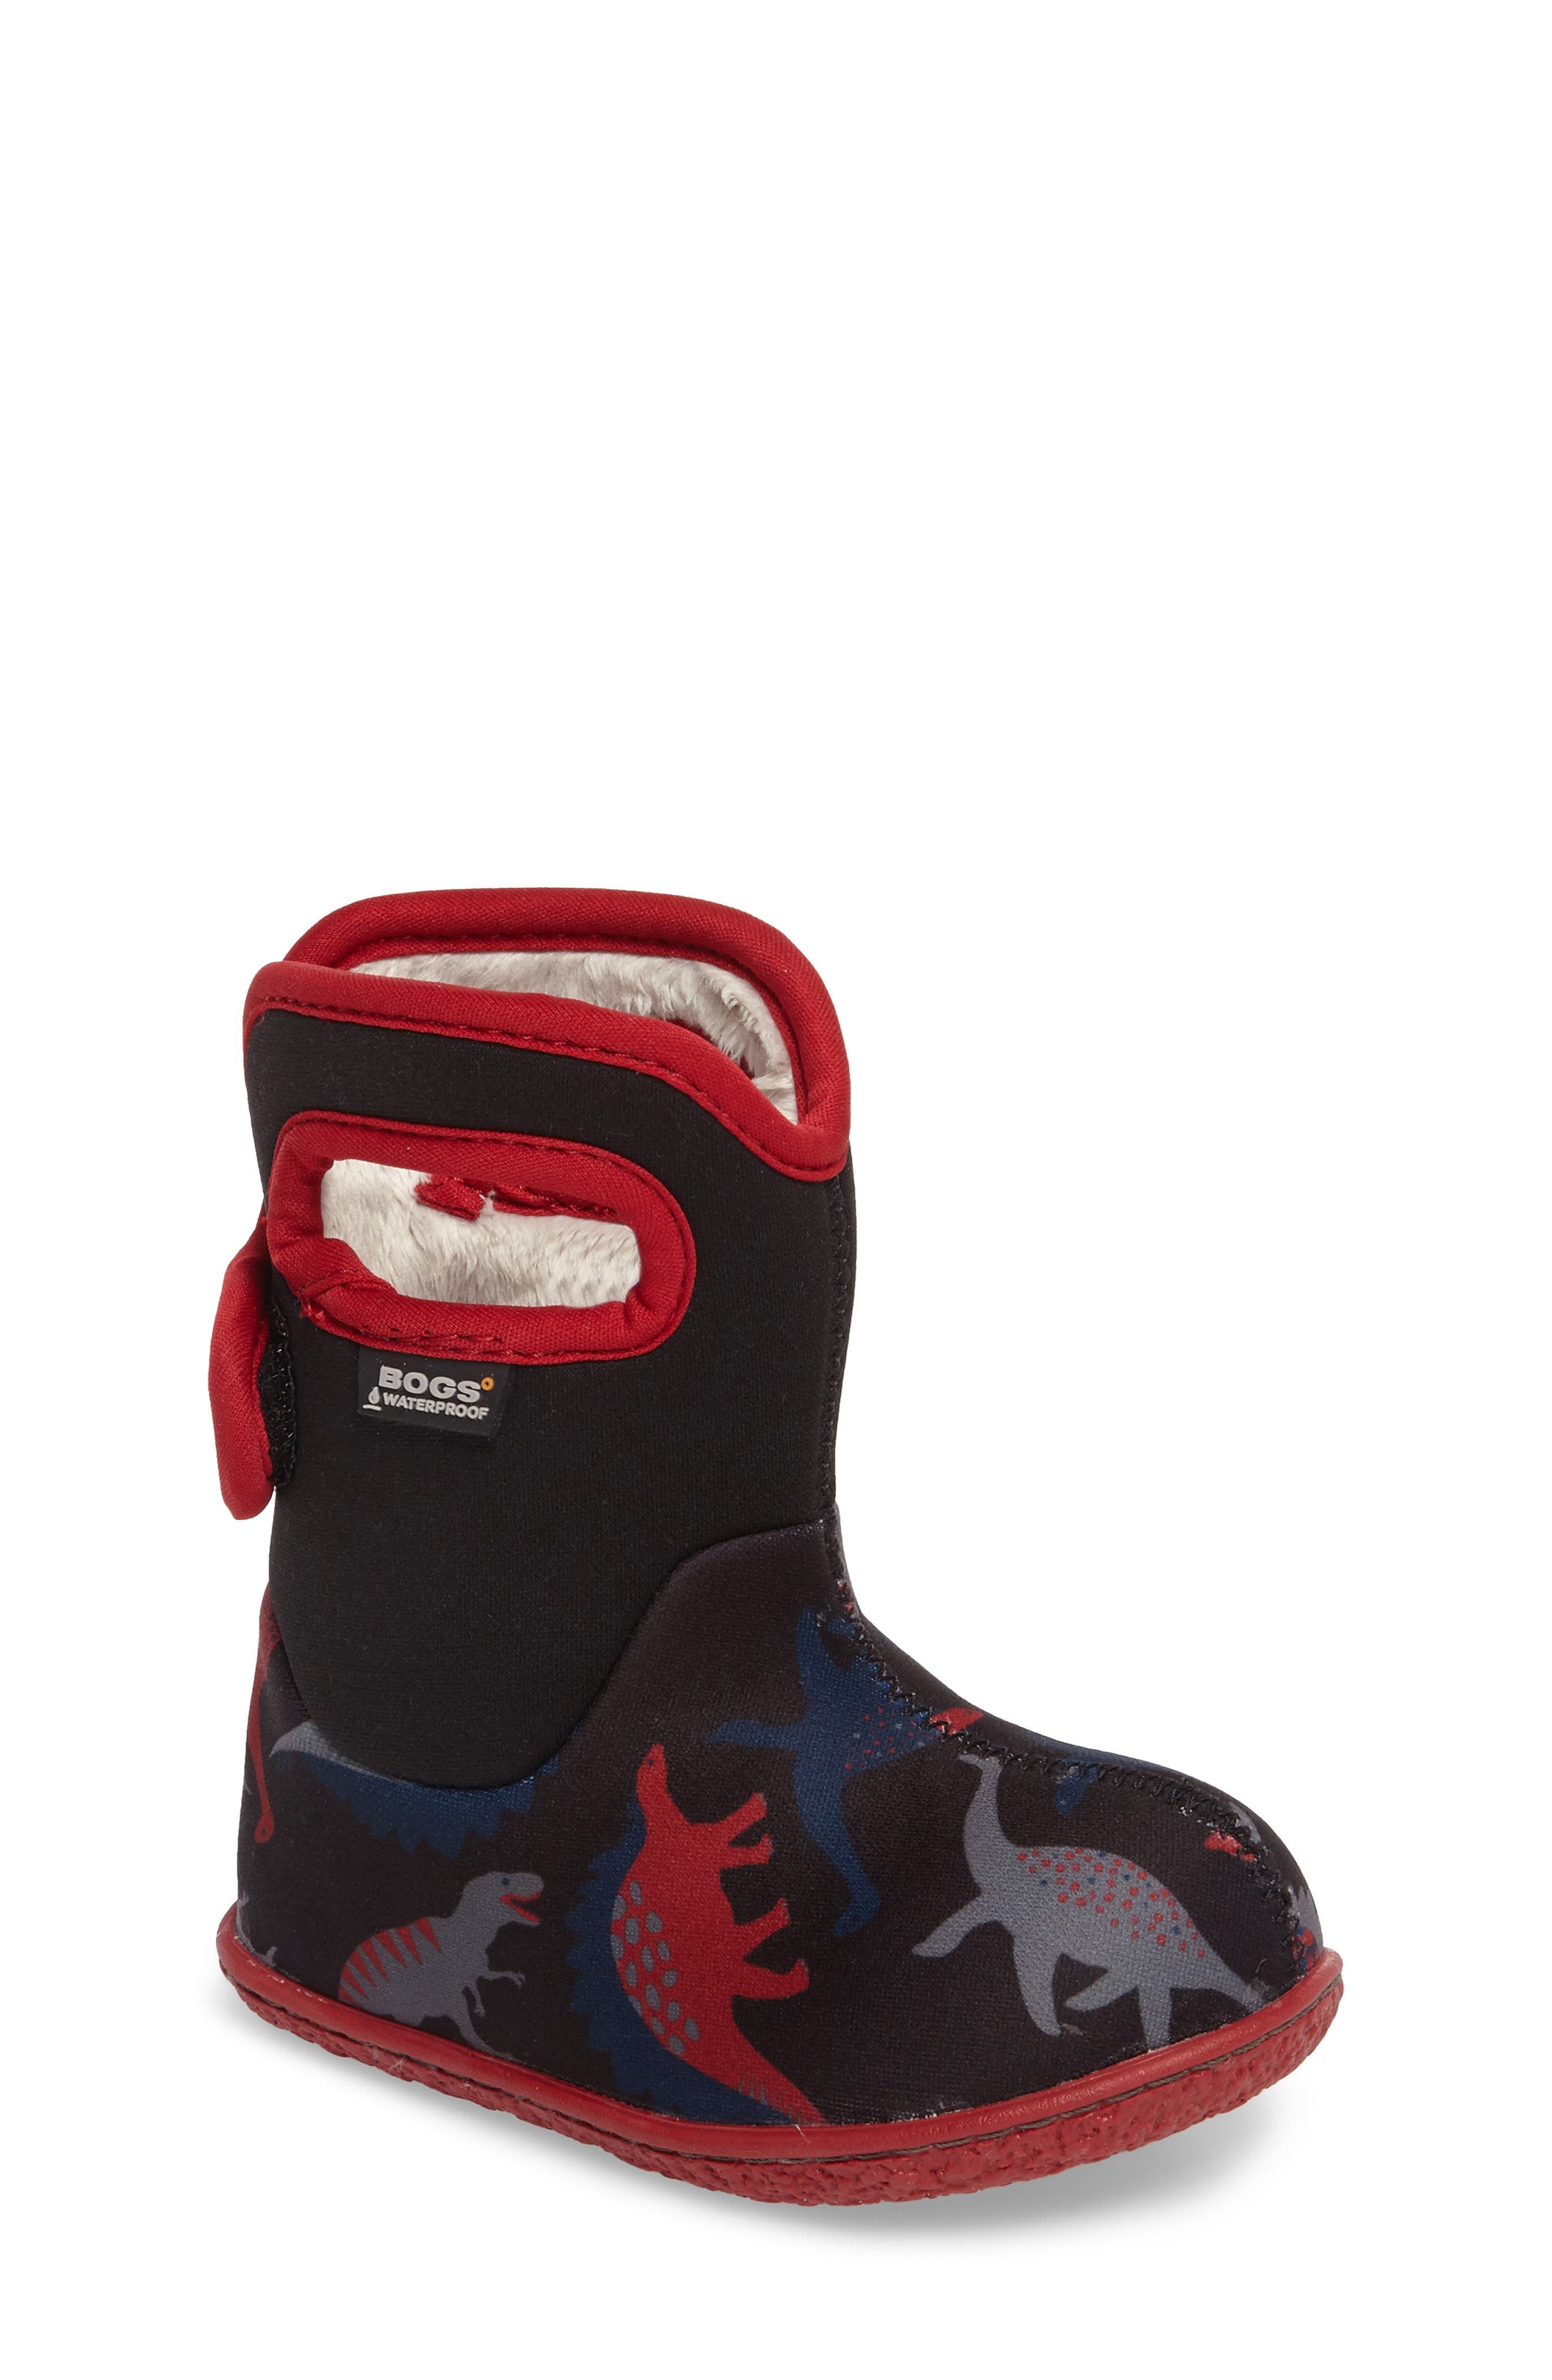 Baby Bog Classic Dino Insulated Waterproof Boot,                         Main,                         color, Black/ Red Multi